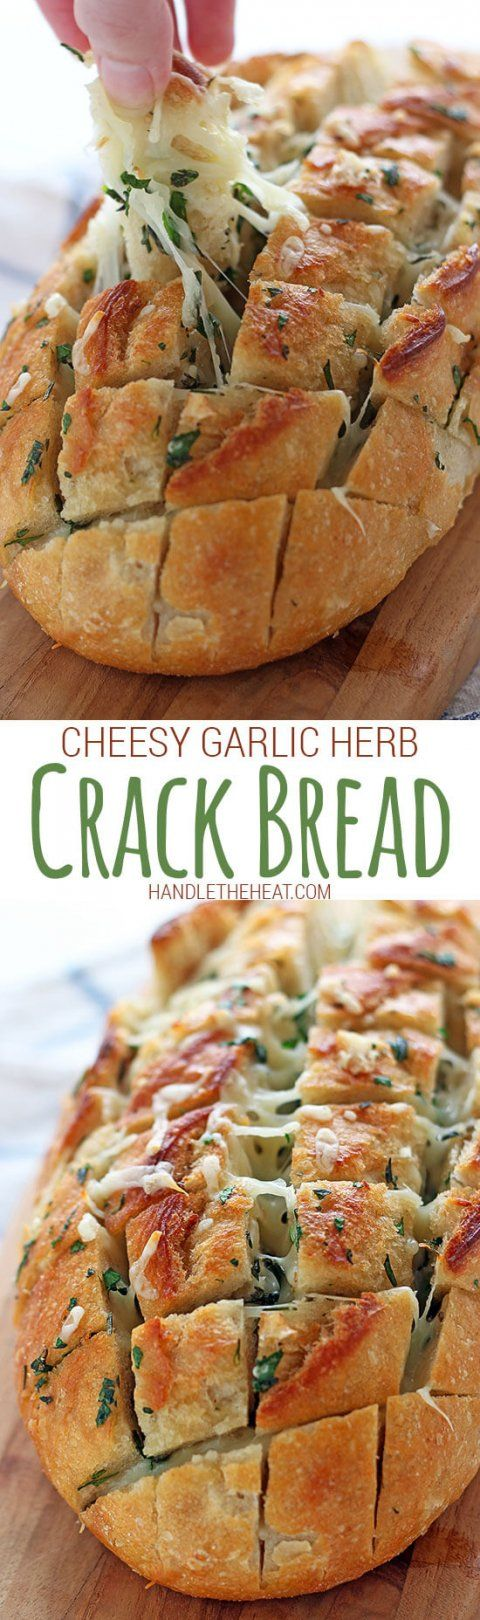 Cheesy Garlic Herb Crack Bread | Breads, Crack Bread and Garlic